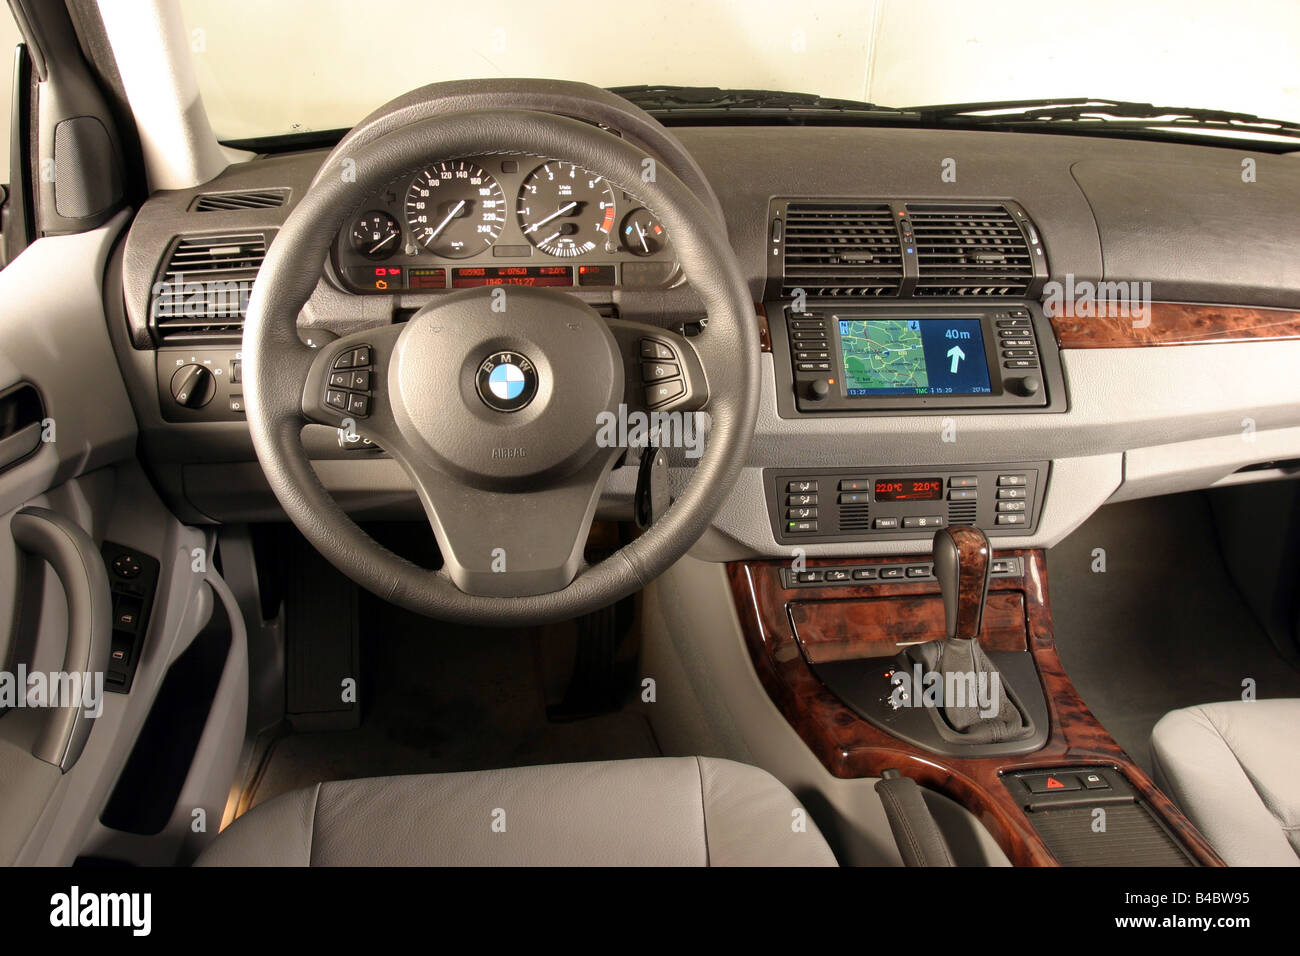 Car, BMW X5 3.0i, Cross Country Vehicle, Model Year 2003 , Blue, Interior  View, Interior View, Cockpit, Technique/accessory, Acc